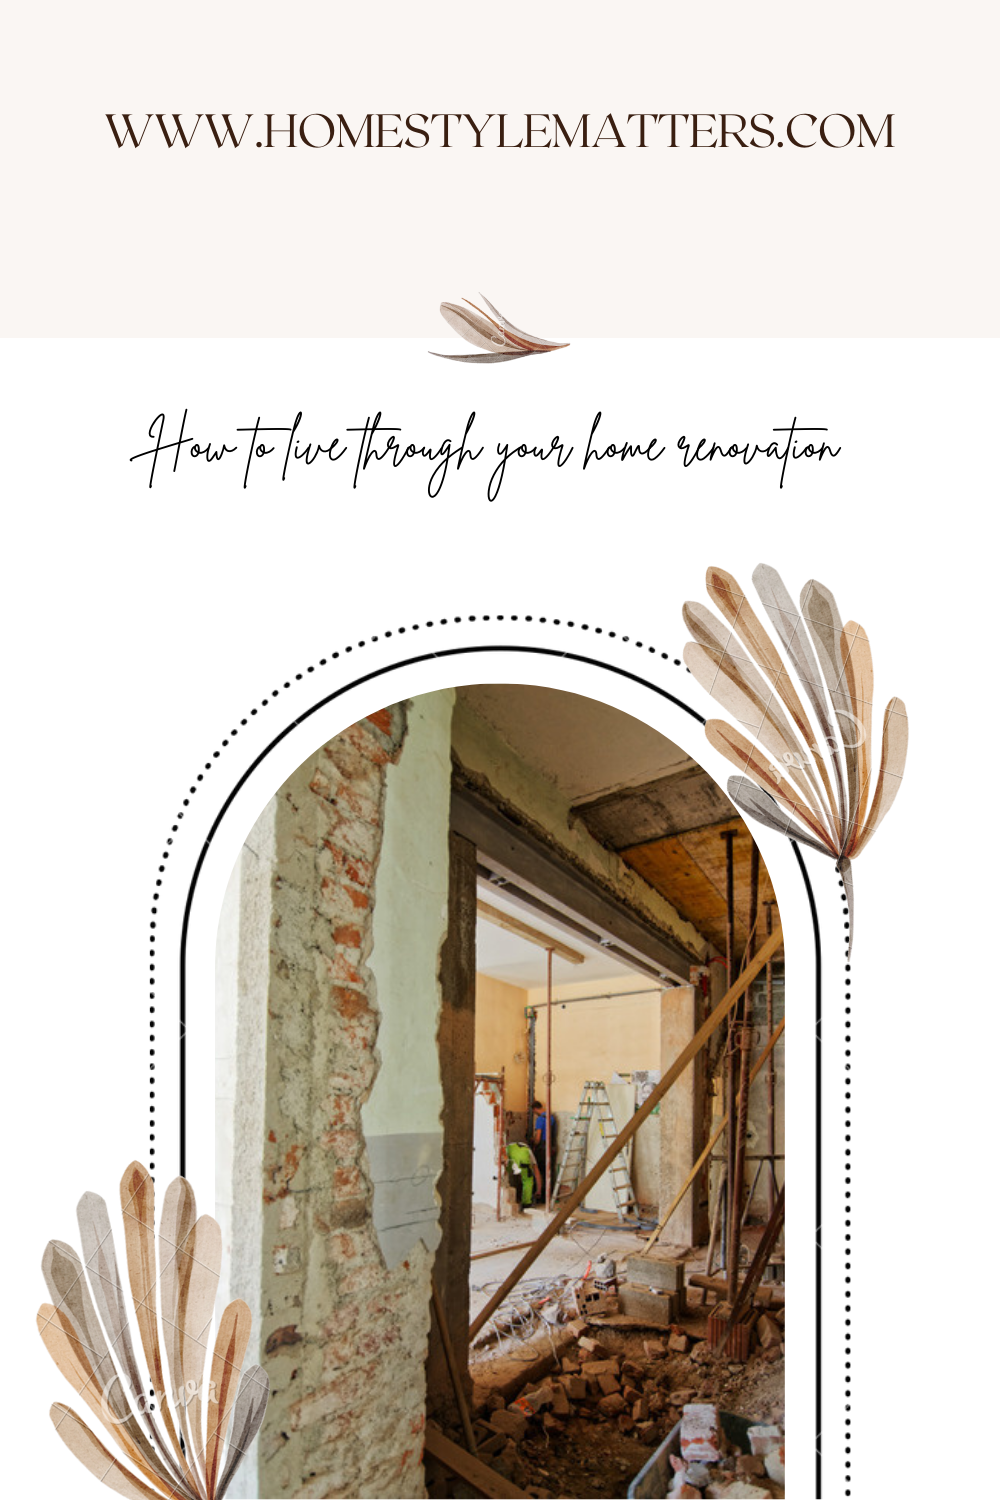 How to live through your home renovation 5